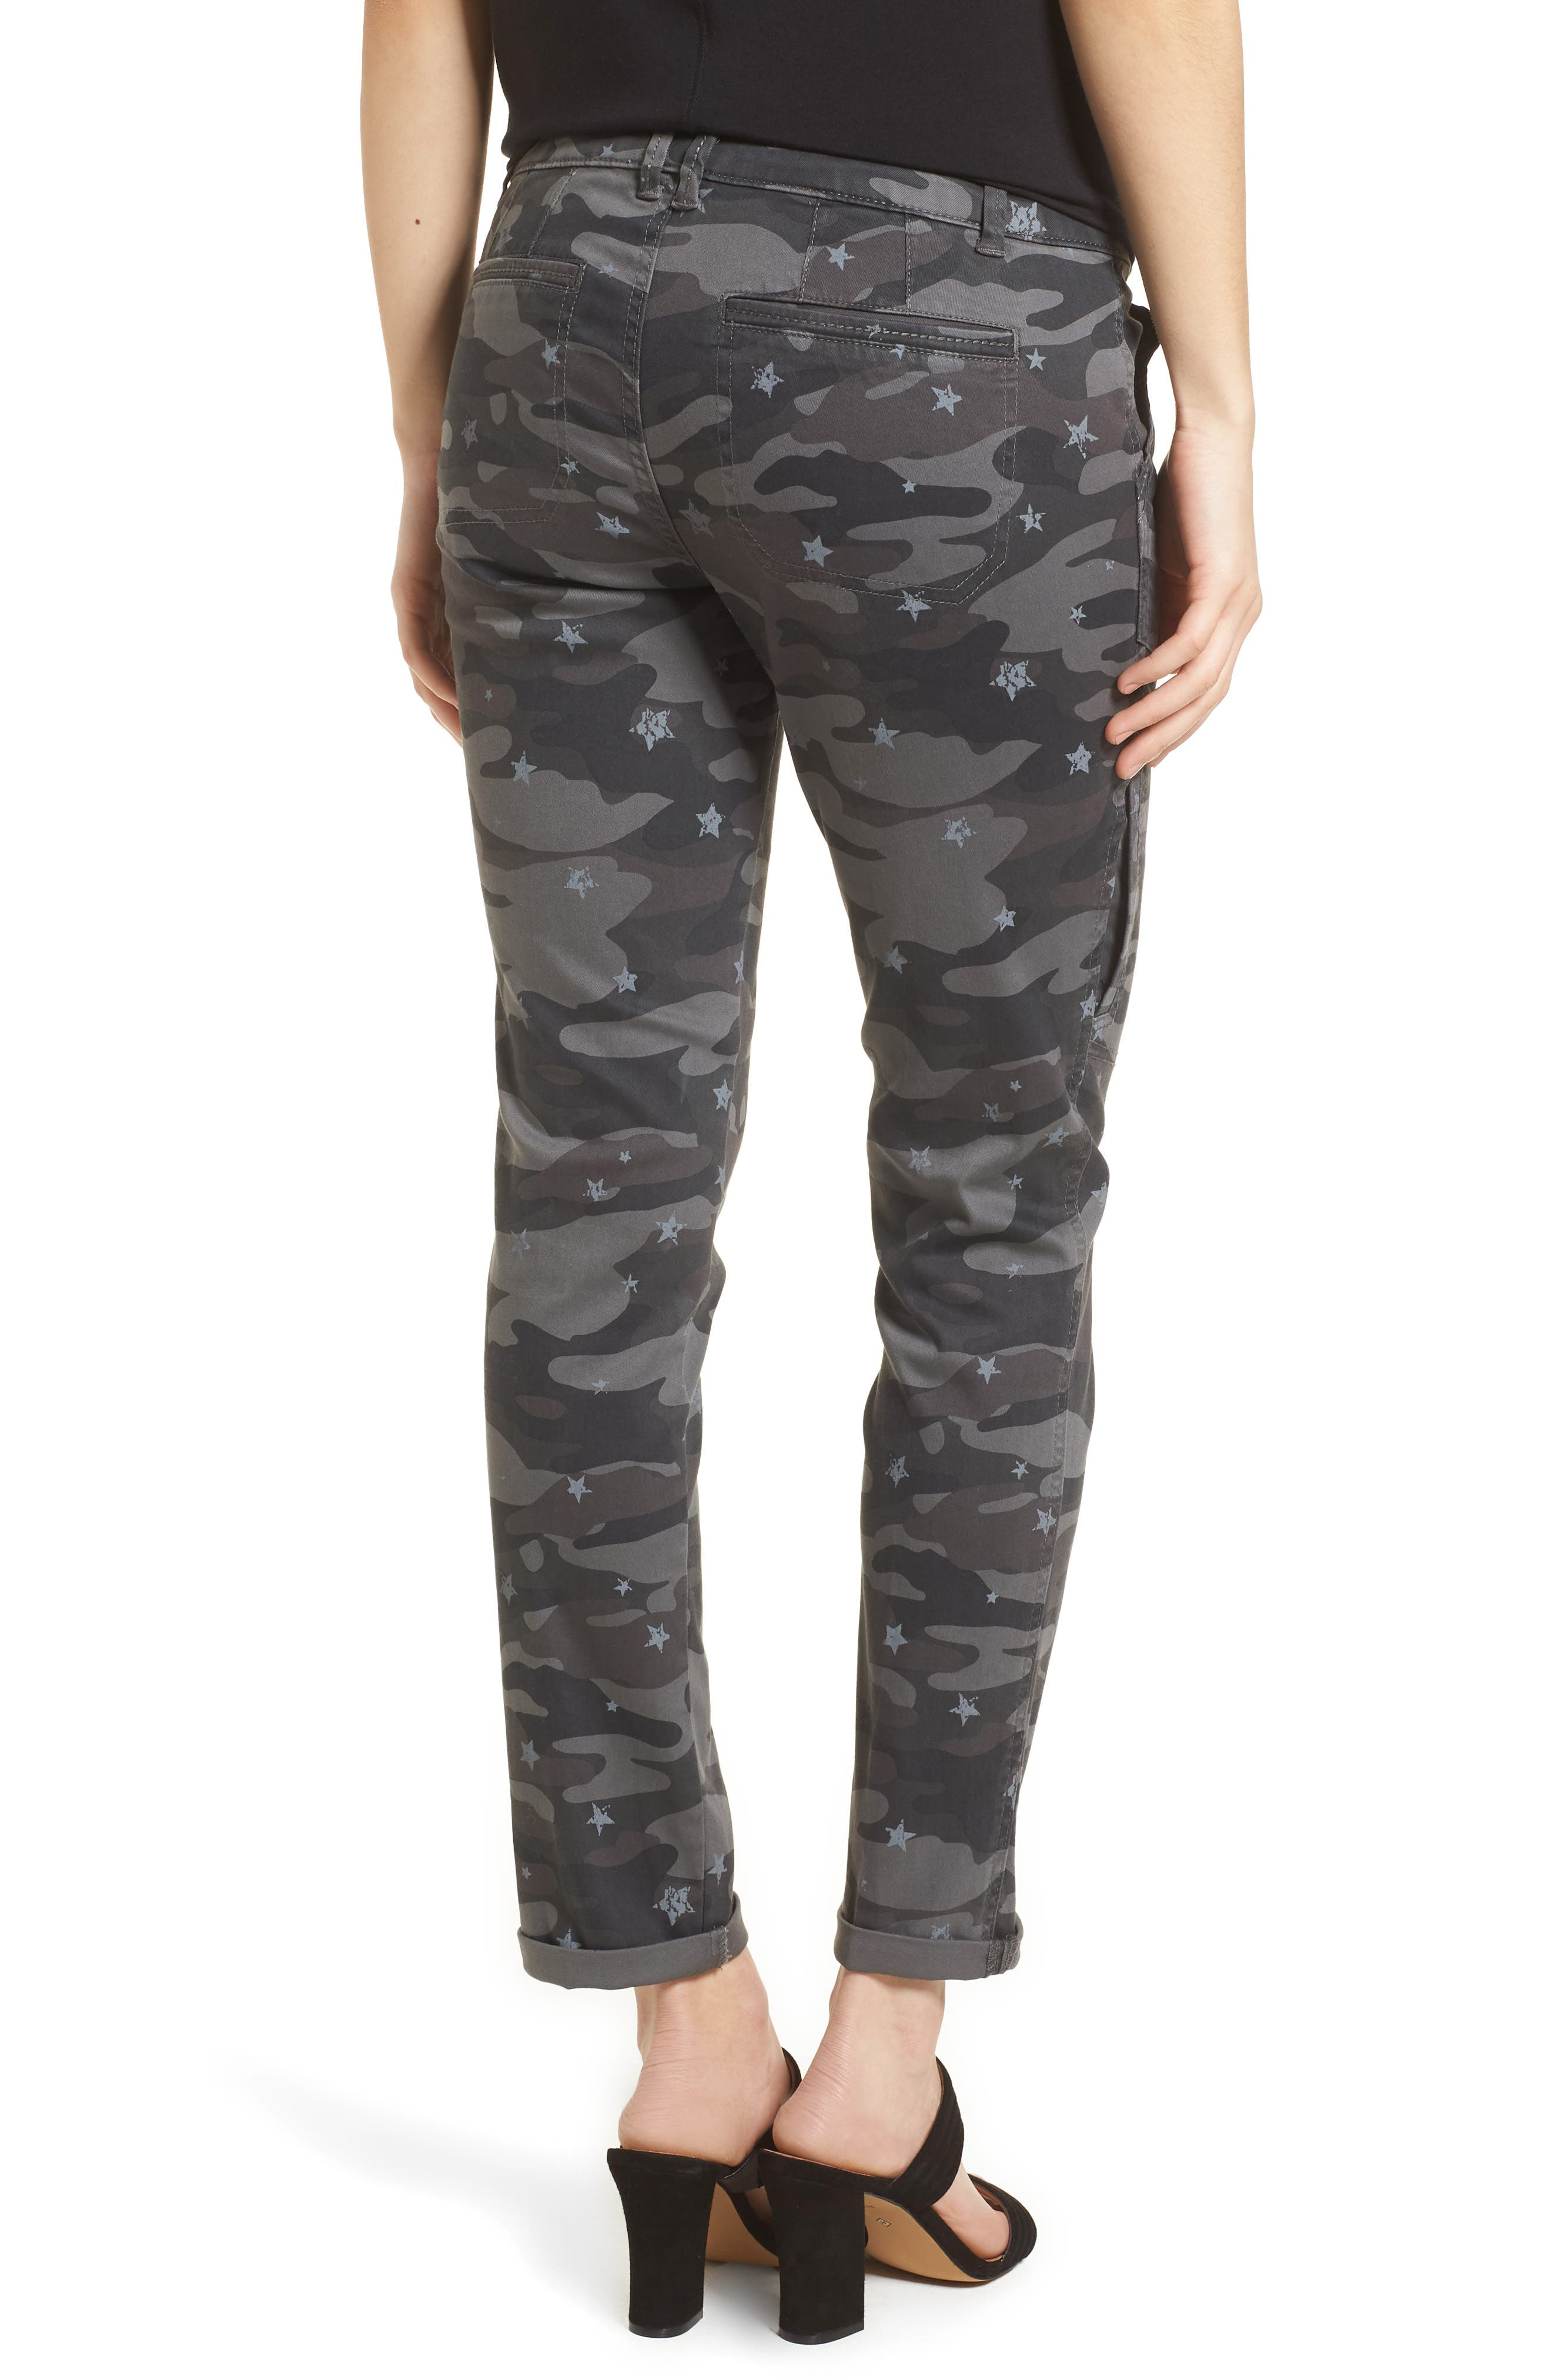 Twill Star Camo Cargo Pants,                             Alternate thumbnail 2, color,                             Cc- Charcoal